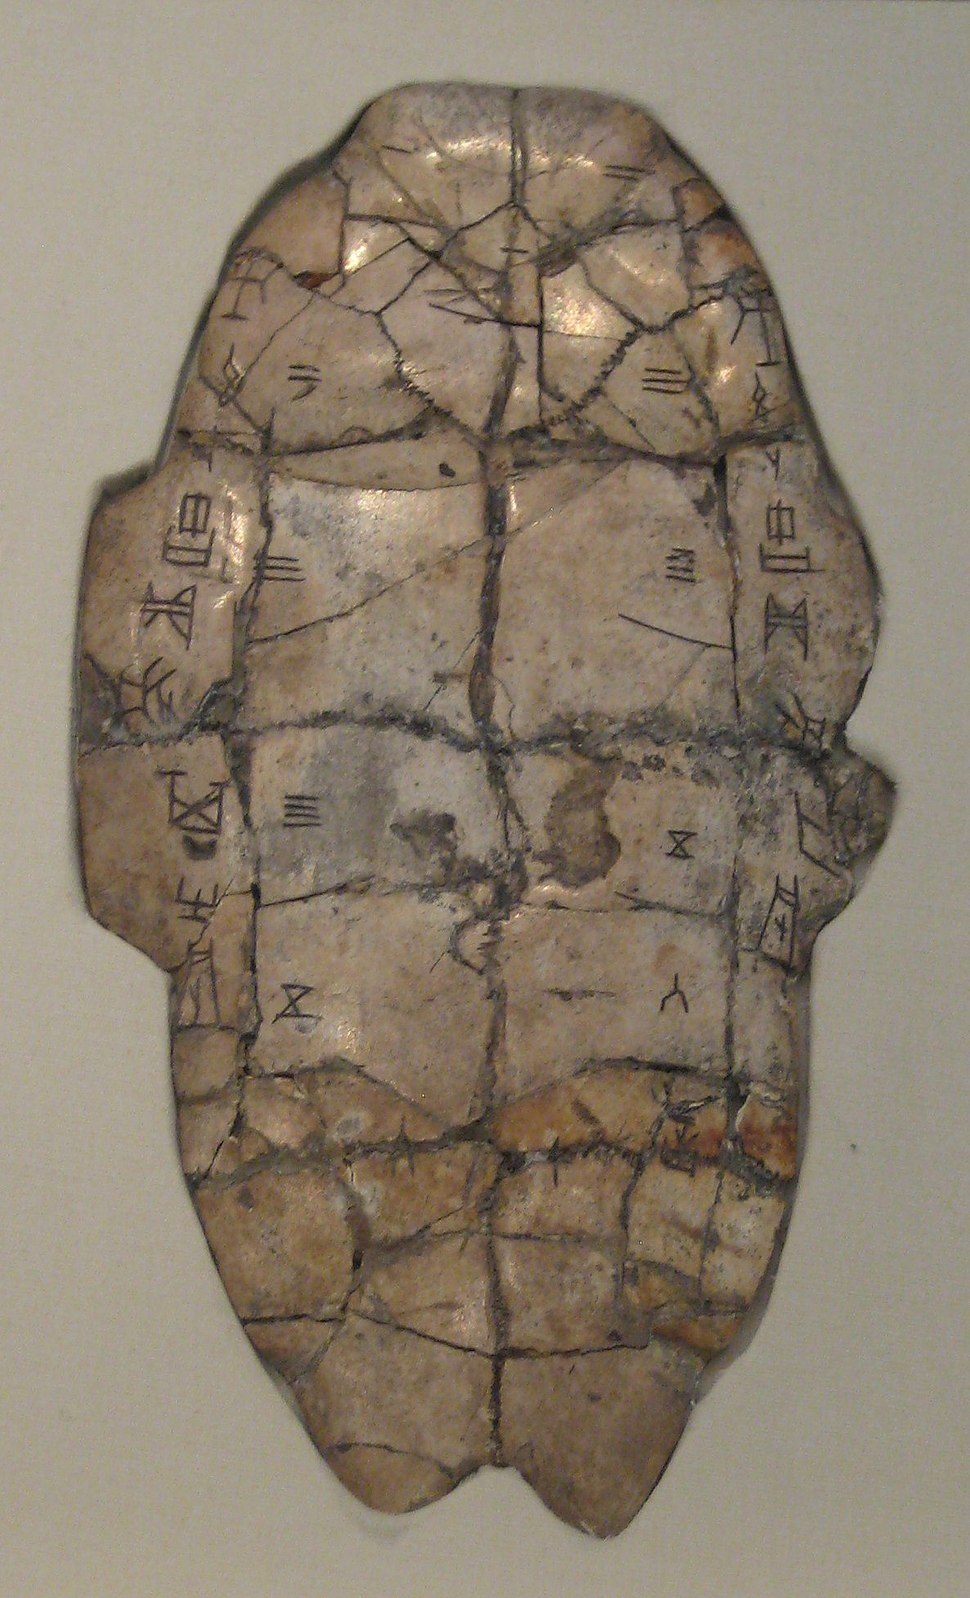 Shang dynasty inscribed tortoise plastron